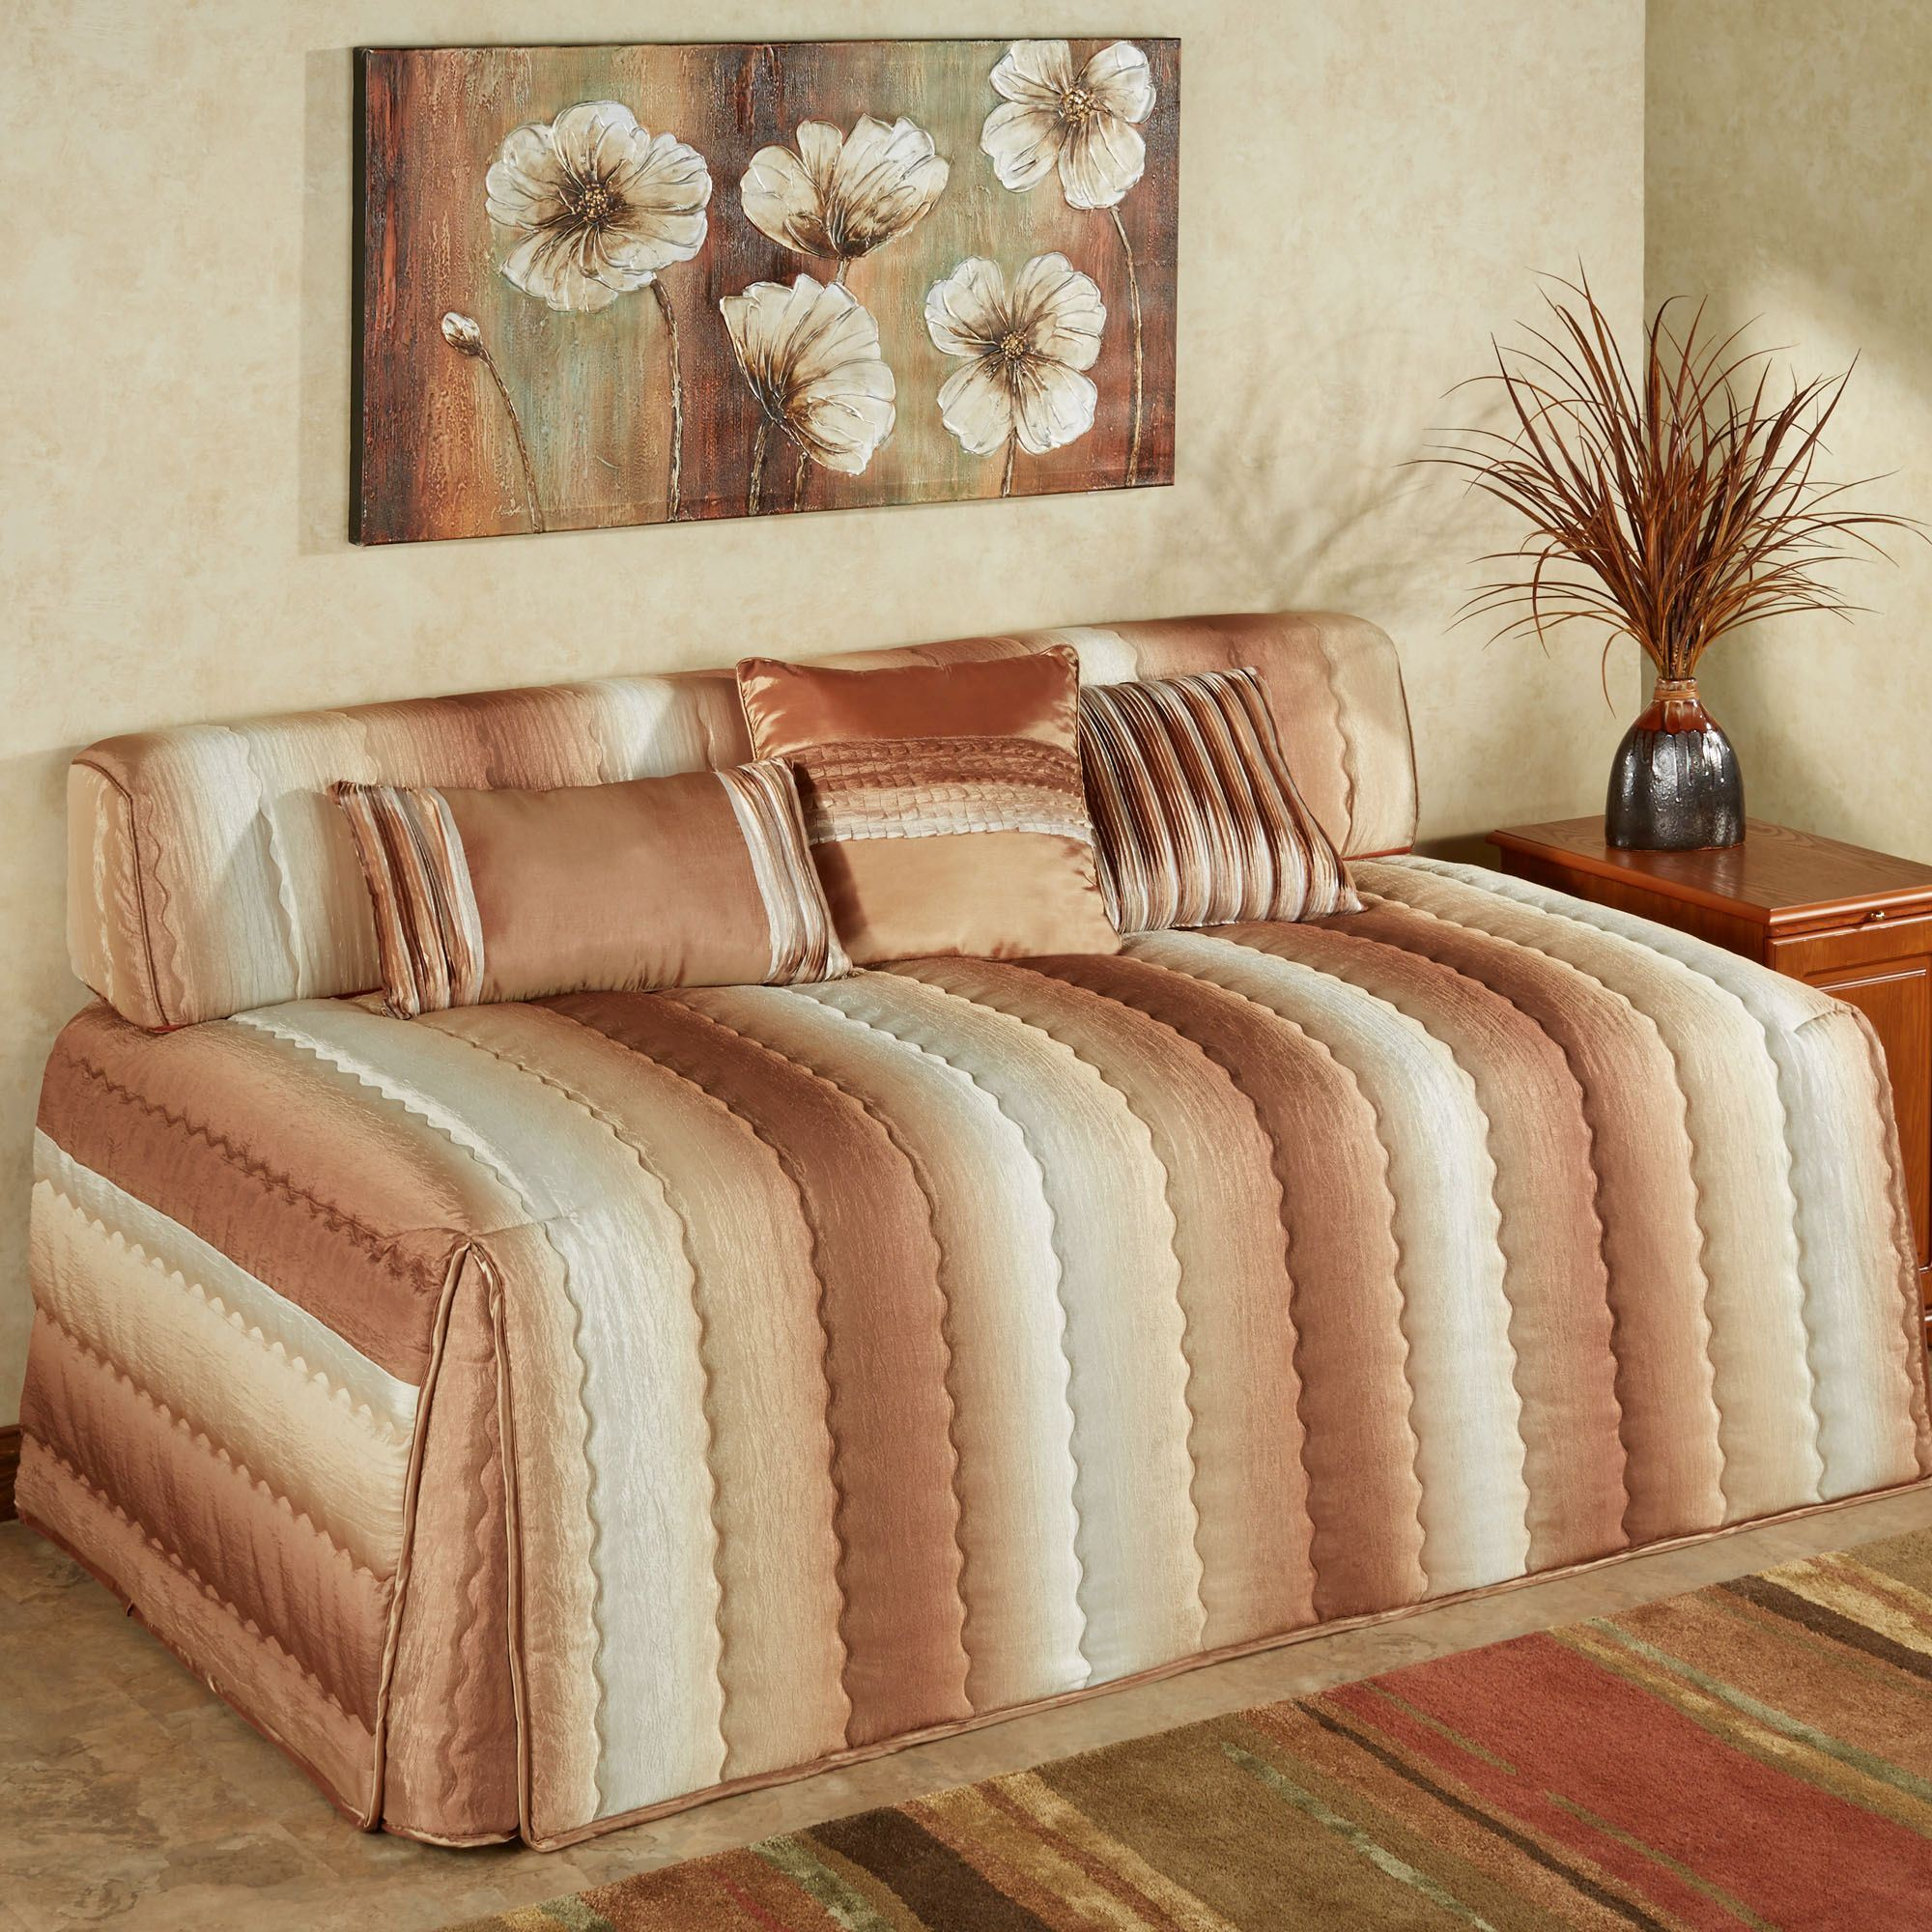 Mirage Ombre Striped Quilted Hollywood Daybed Cover